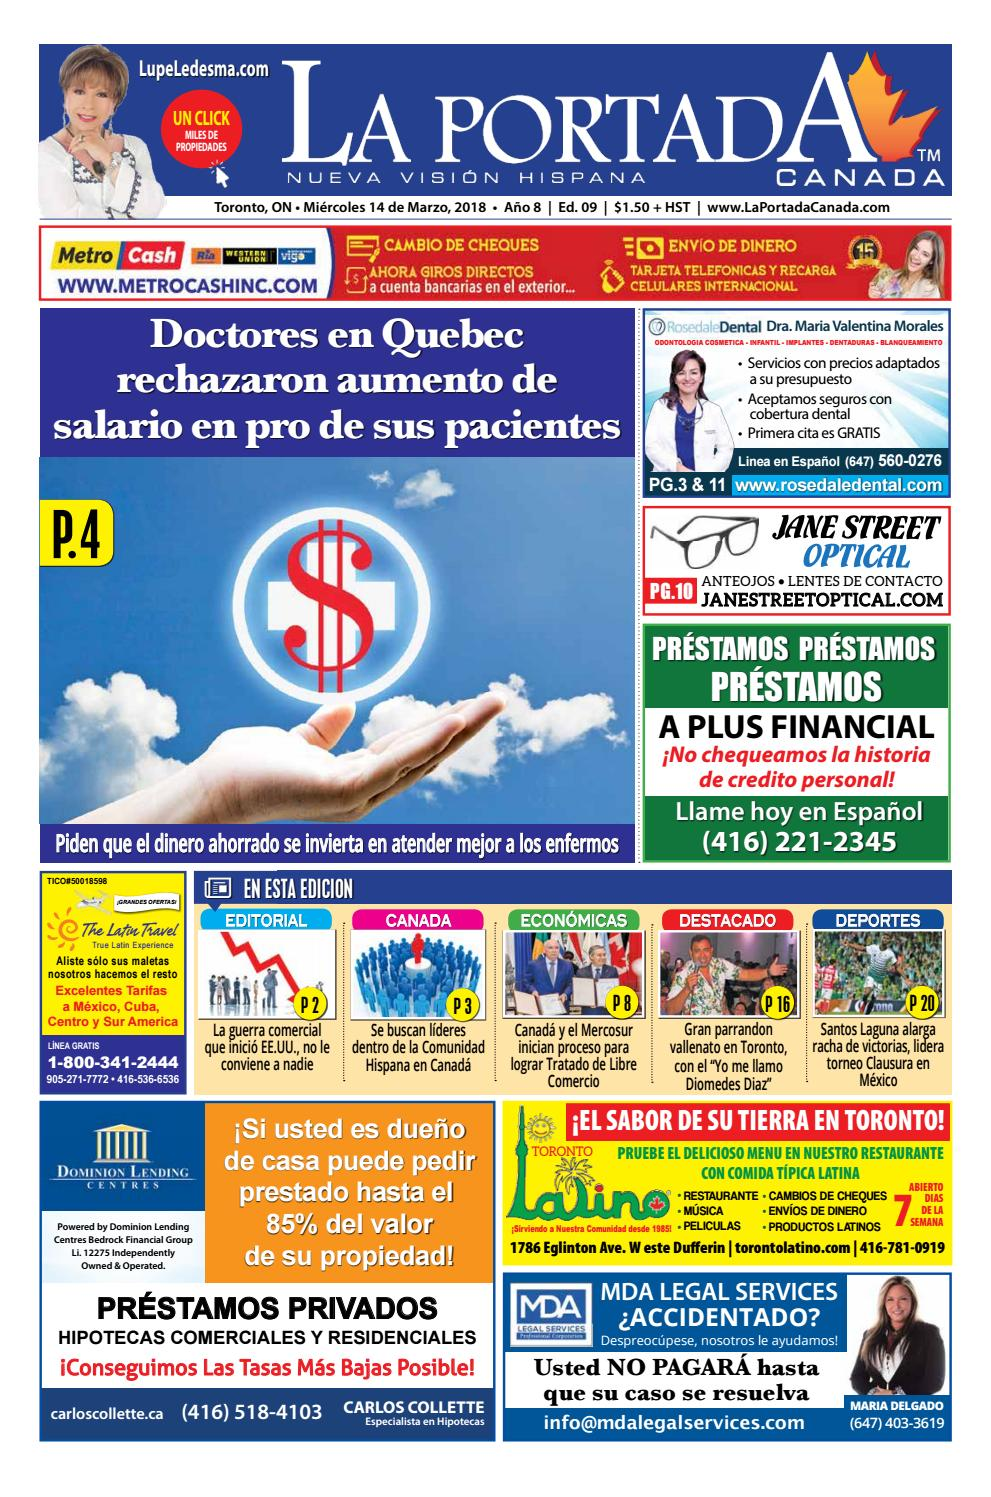 74a2e6dab1 2018 09 laportada 14 march 2018 by Comercio Latino - issuu